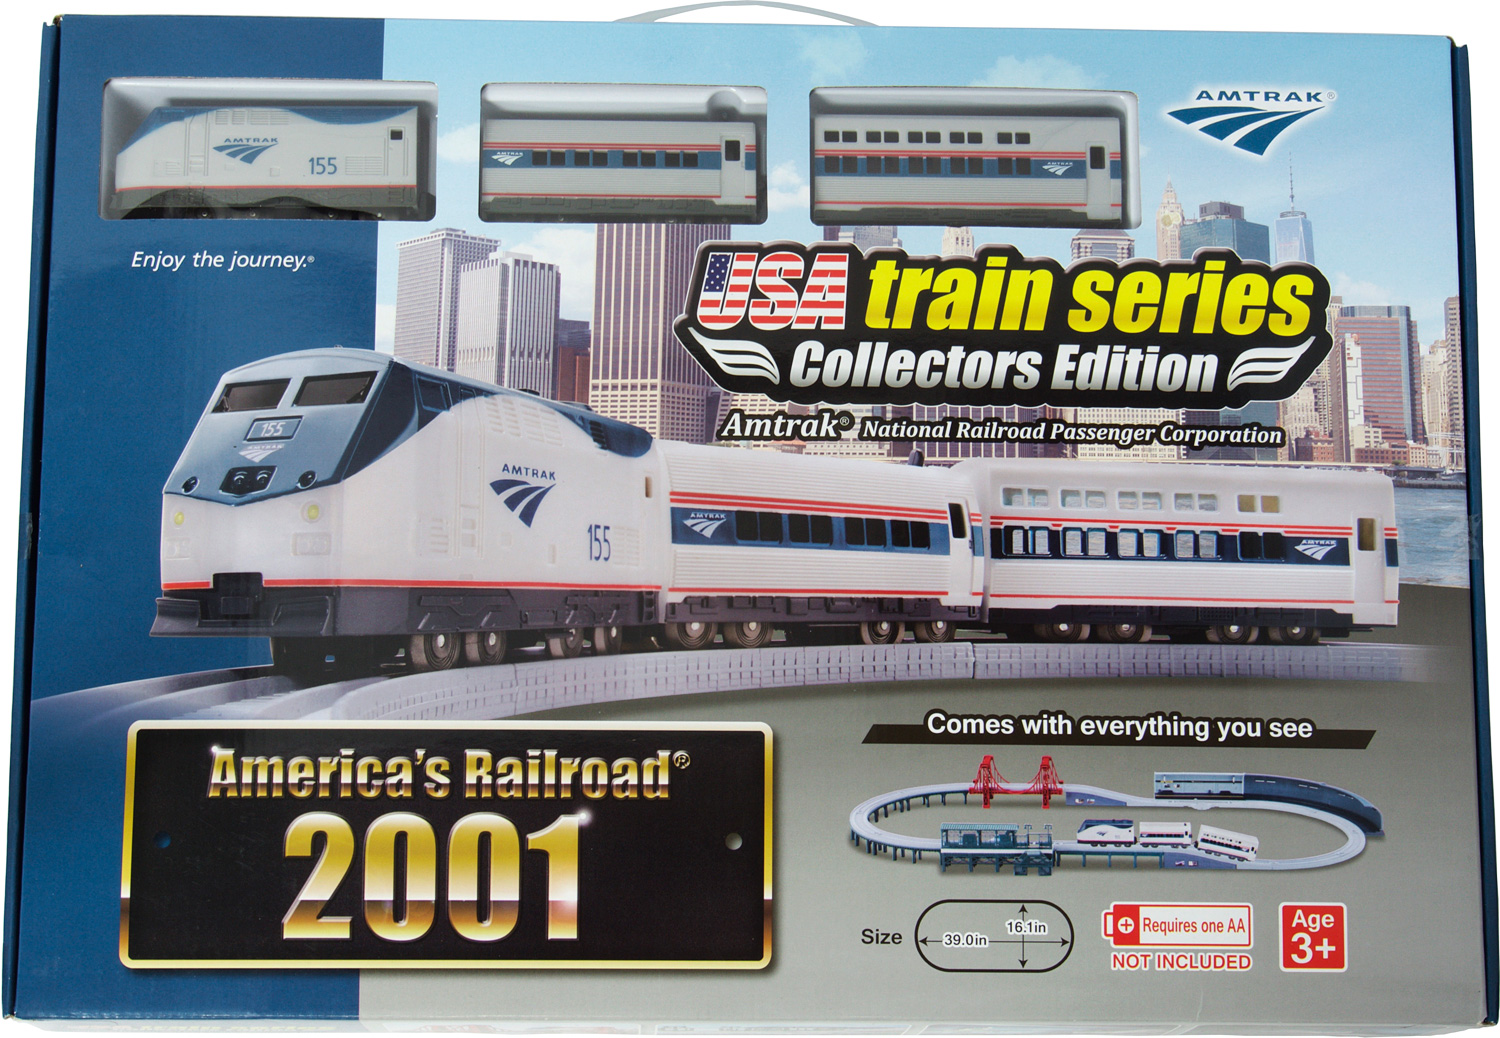 US train 2001 set Amtrak line 155